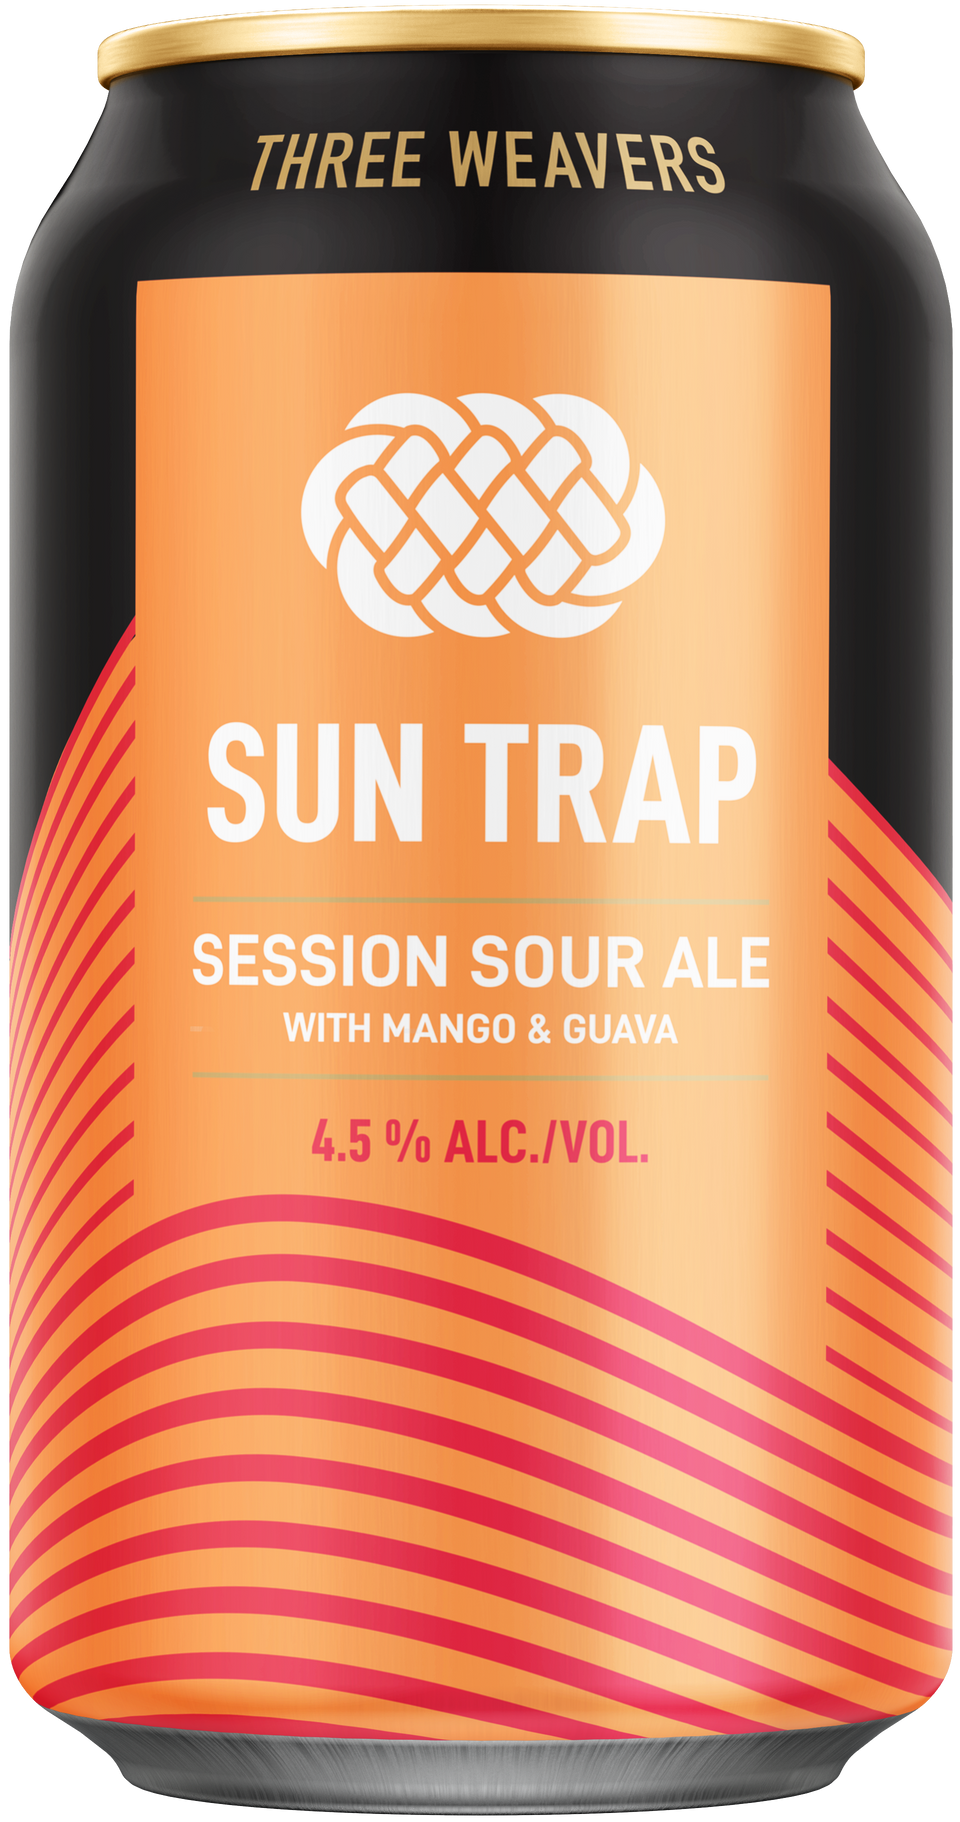 Sun Trap Session Sour w/ Mango & Guava